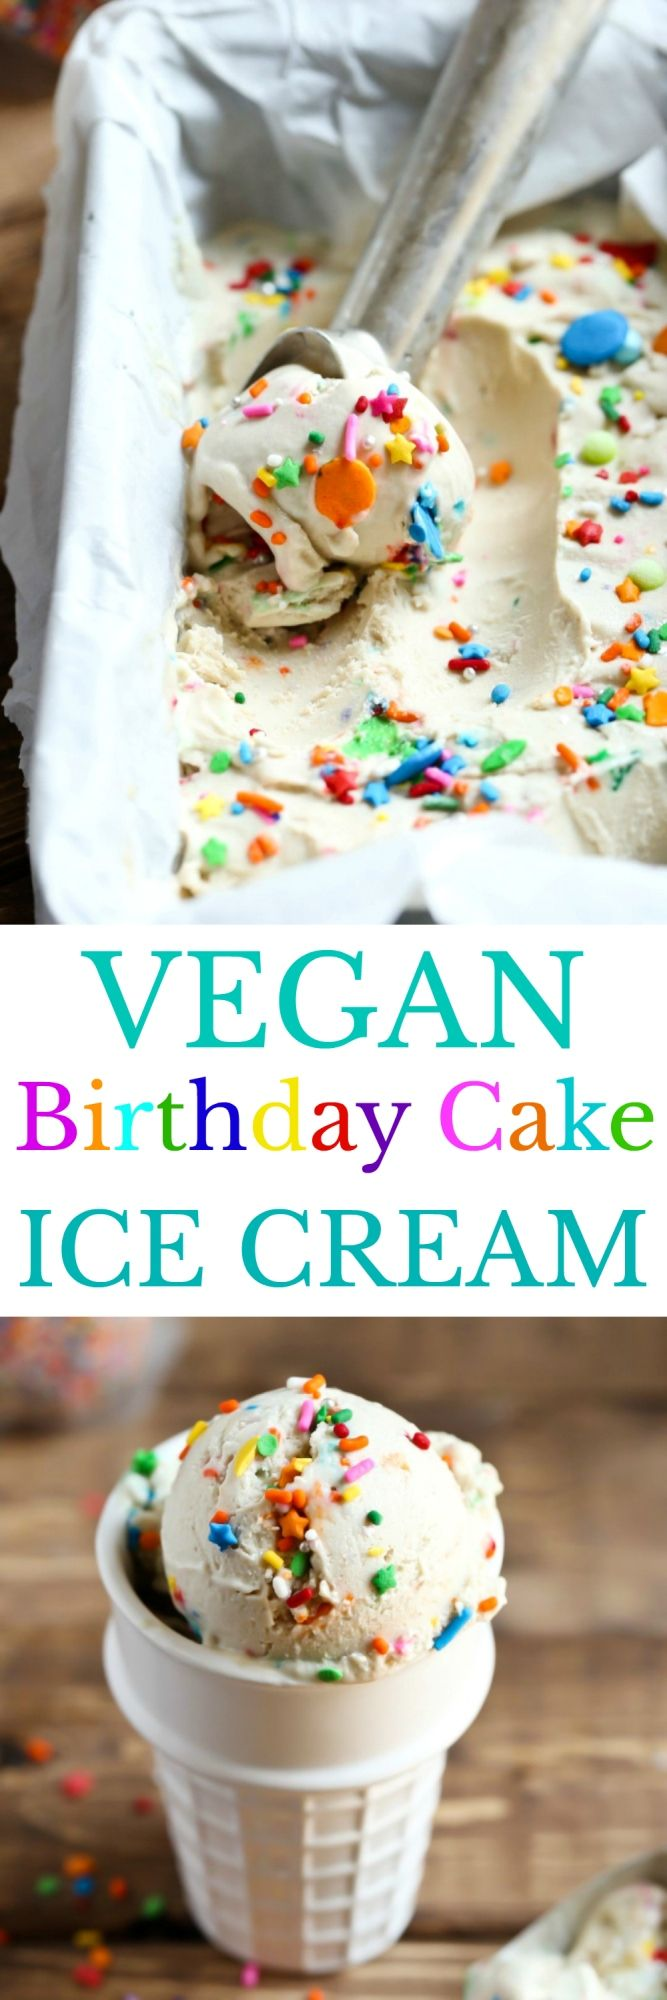 Vegan Birthday Cake Ice Cream Recipe Birthday cake flavors